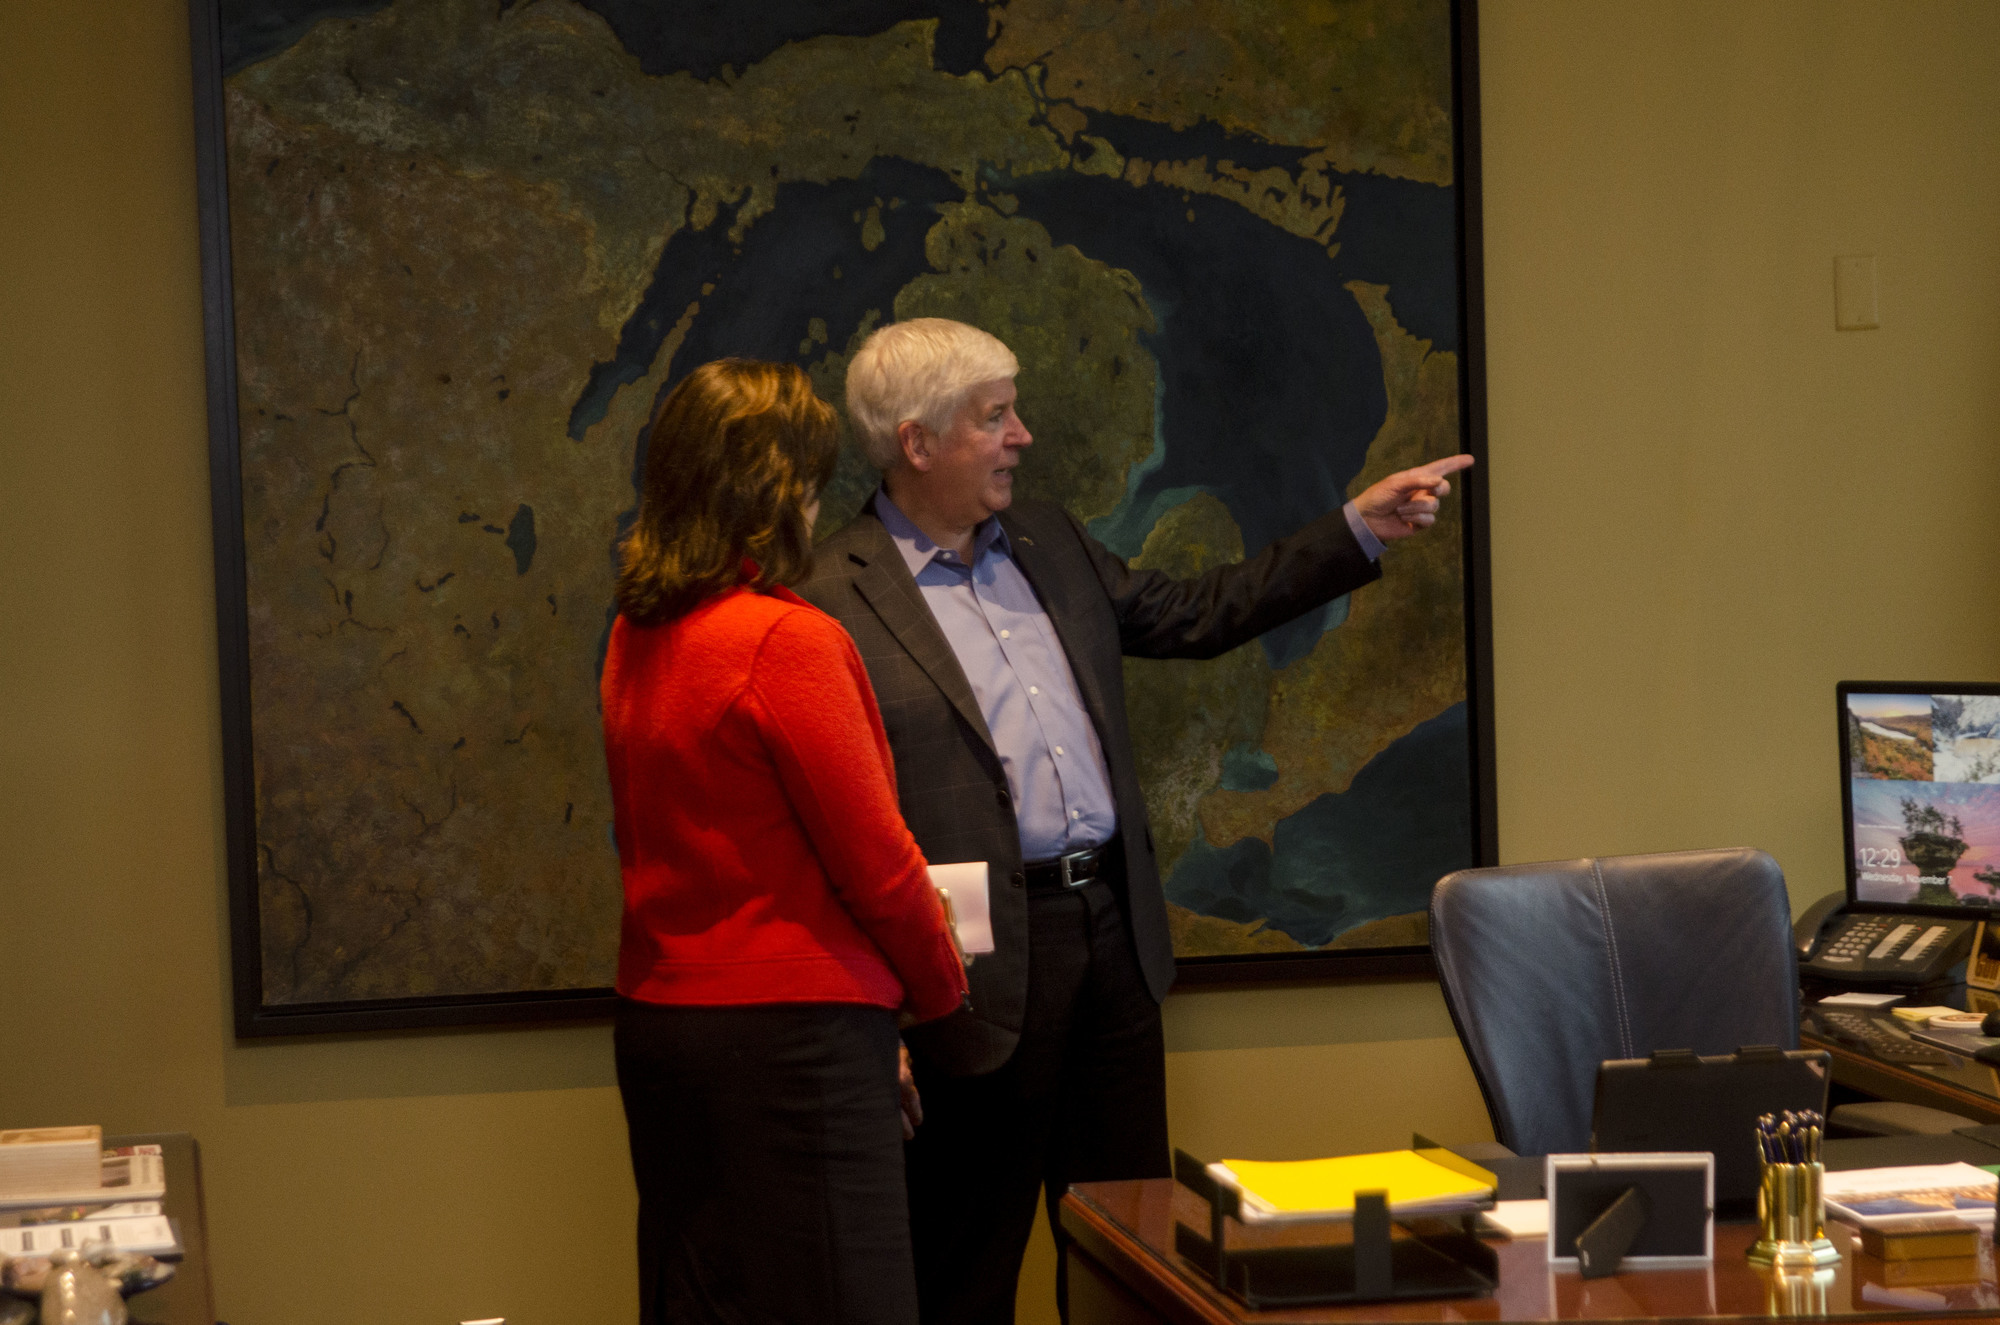 Gov. Snyder meets with Governor-elect Gretchen Whitmer